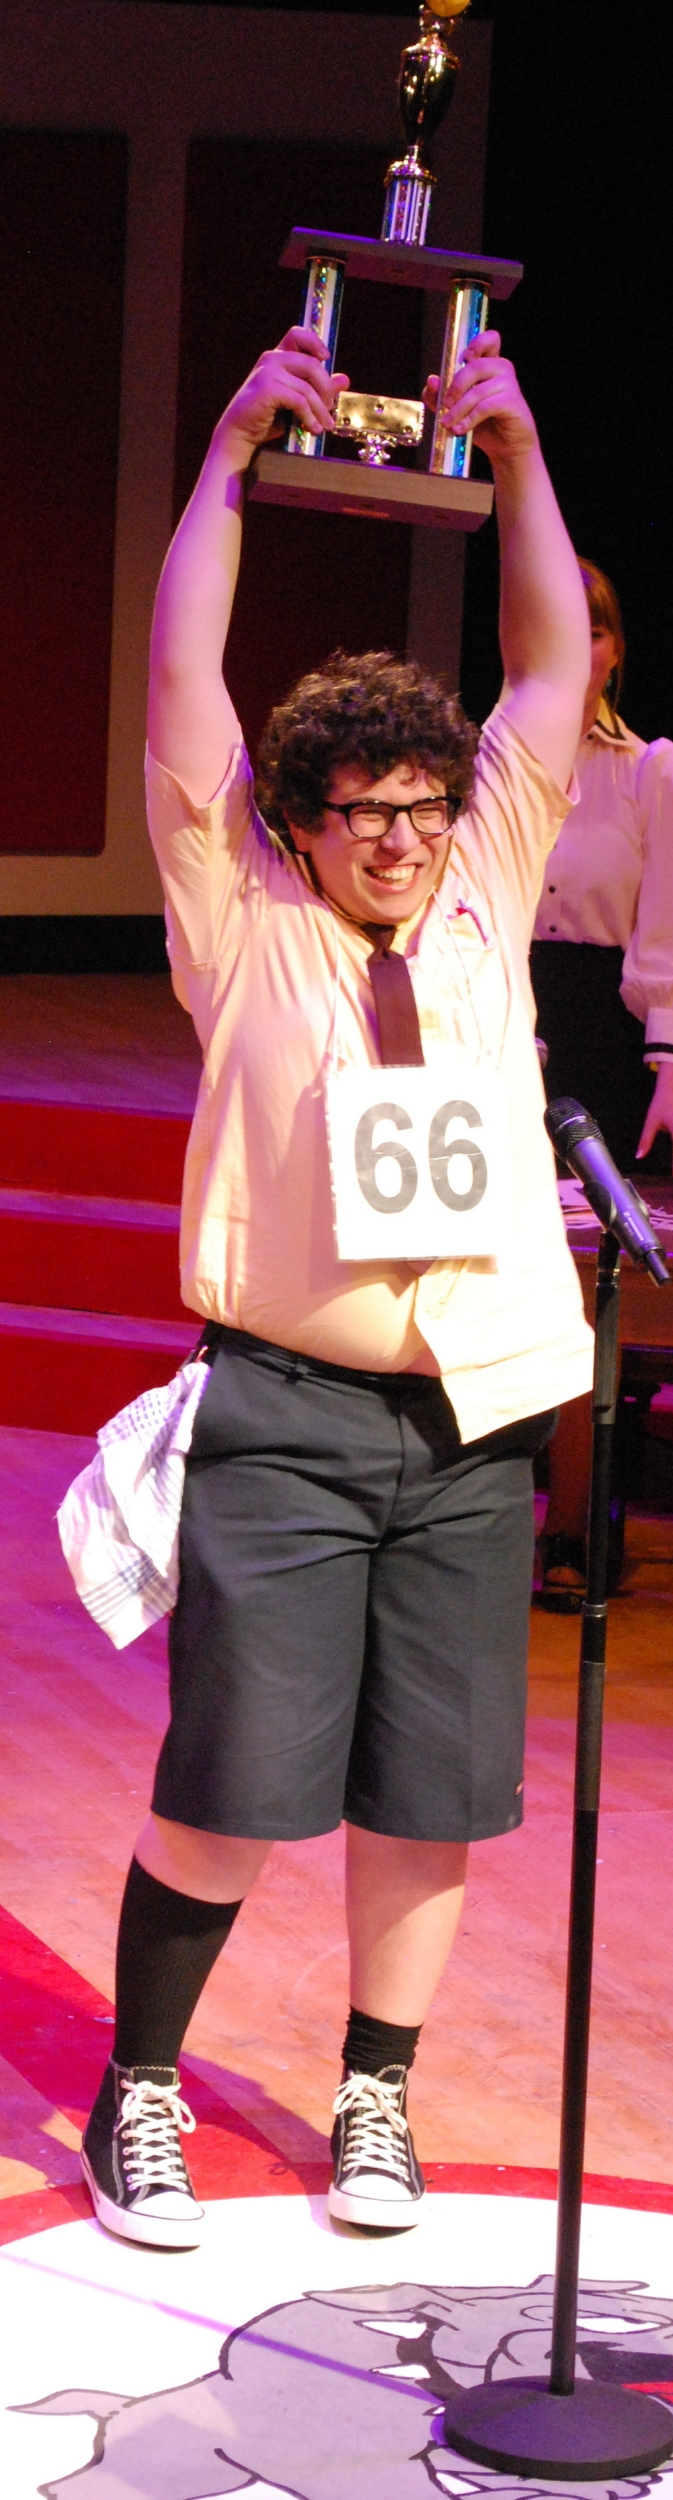 William Barfée in The 25th Annual Putnam County Spelling Bee